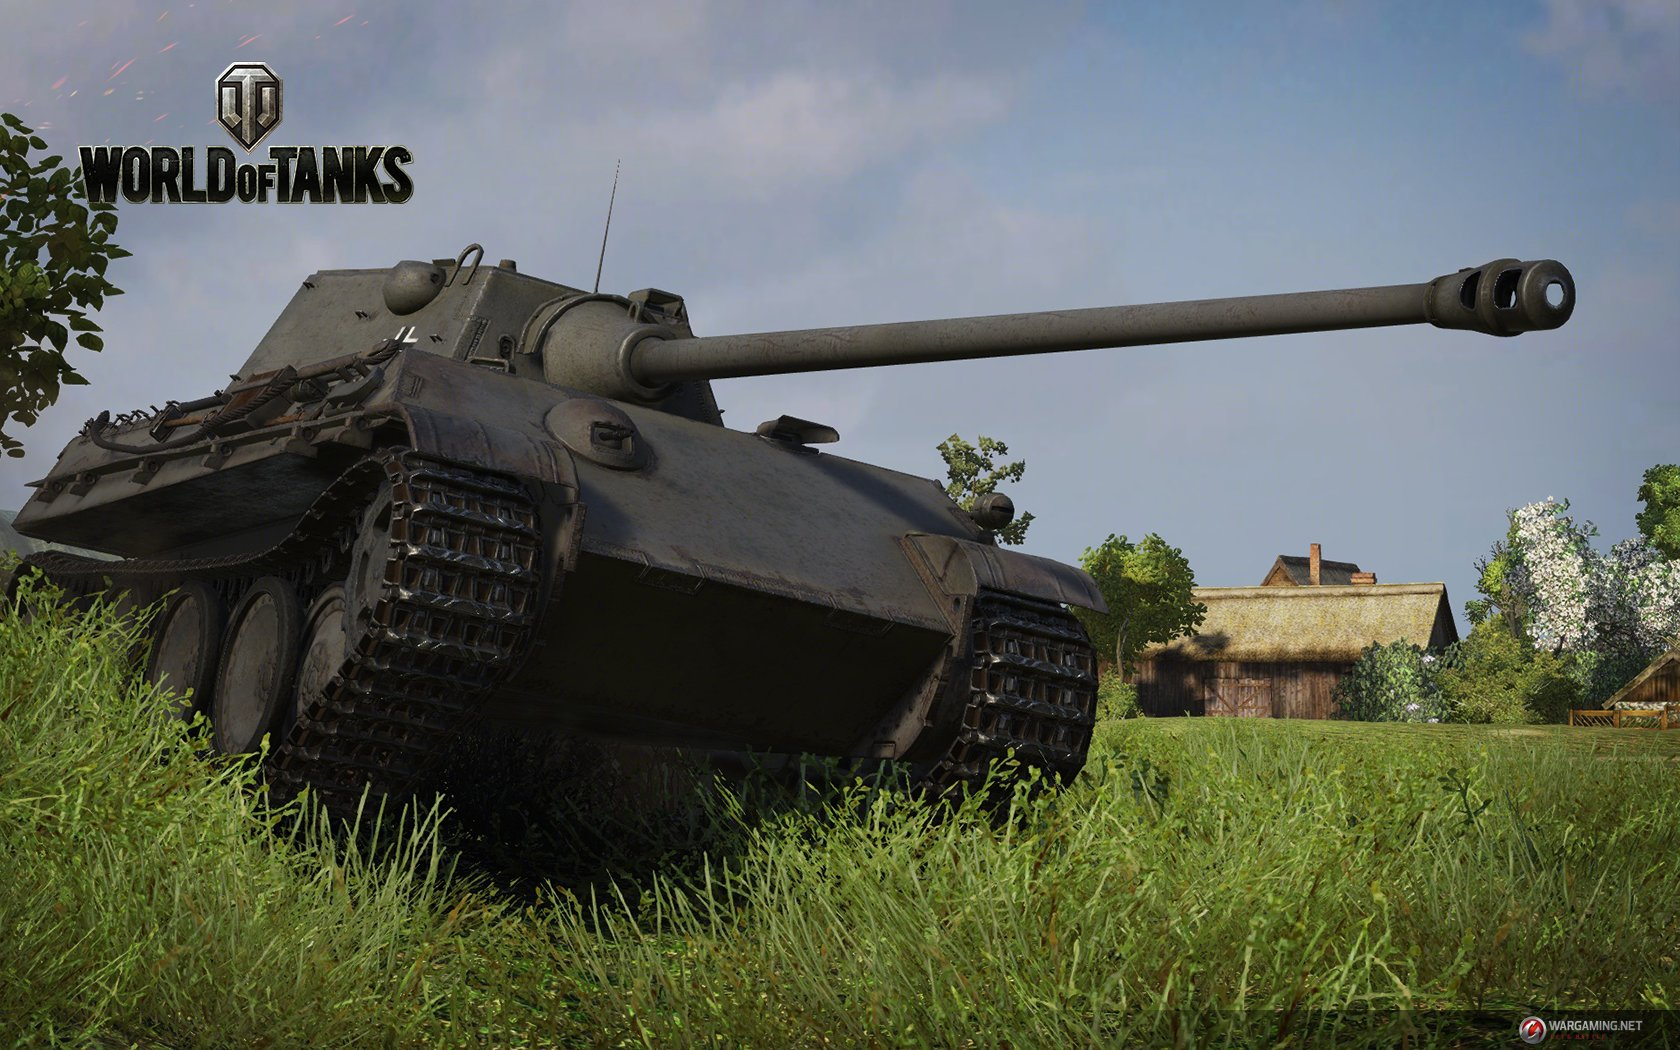 World of Tanks Update 9.0: Panther